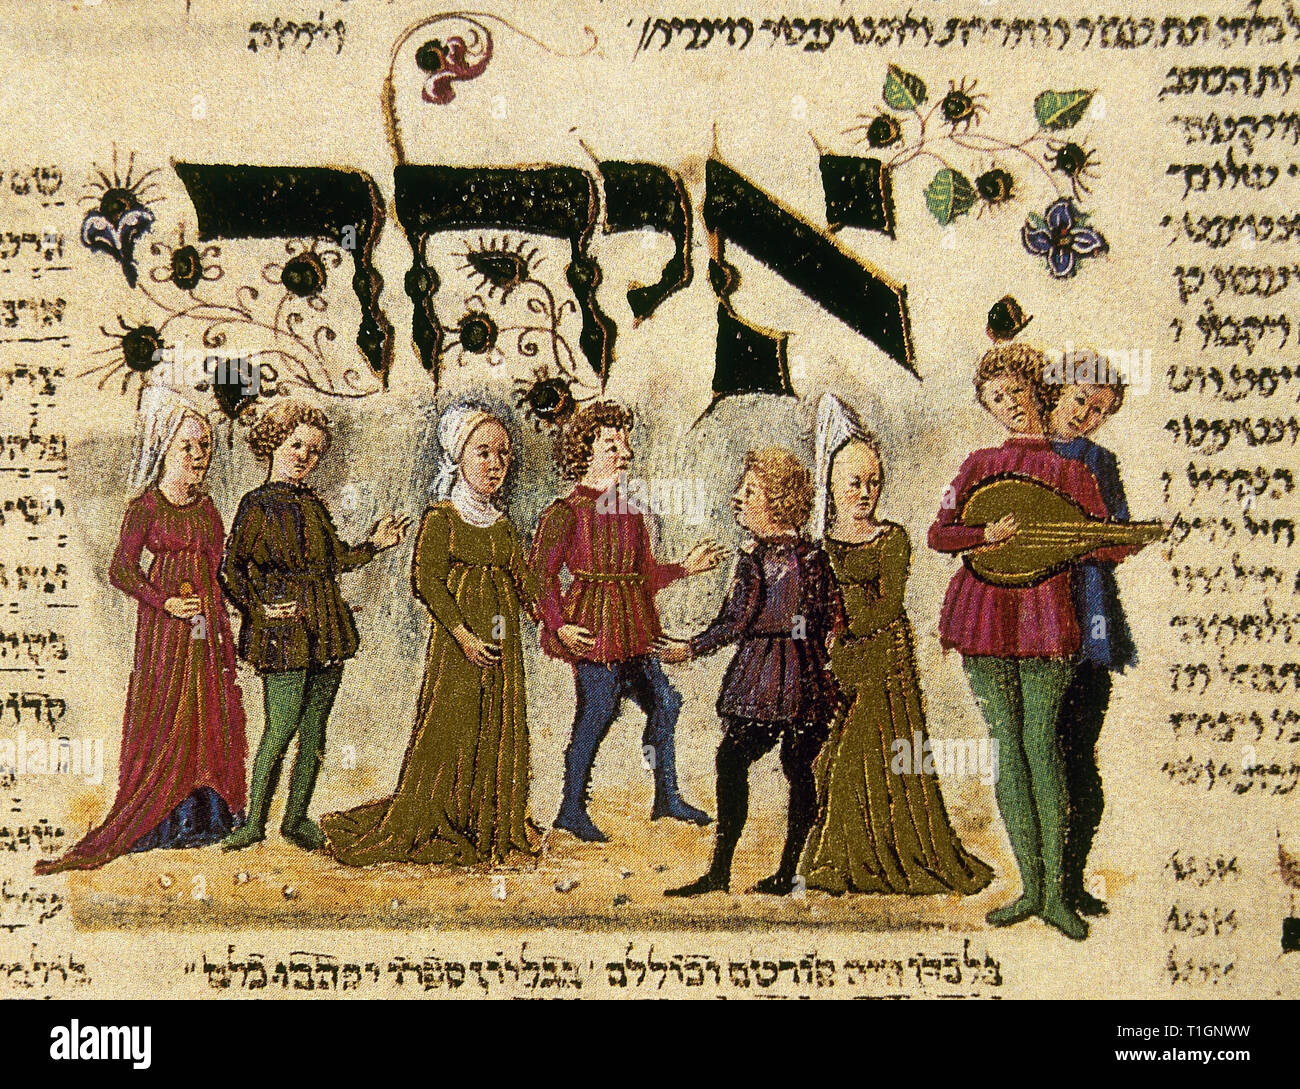 The Rothschild Miscellany (1450-1480). Northern Italy. Compendium of customs in the daily and religious life of Judaism. Hebrew. Folio 233. Dance. Miniature depicting a traditional dance of spouses in the Italy at that tiime, excluding singles. The Israel Museum. Jerusalem, Israel. - Stock Image